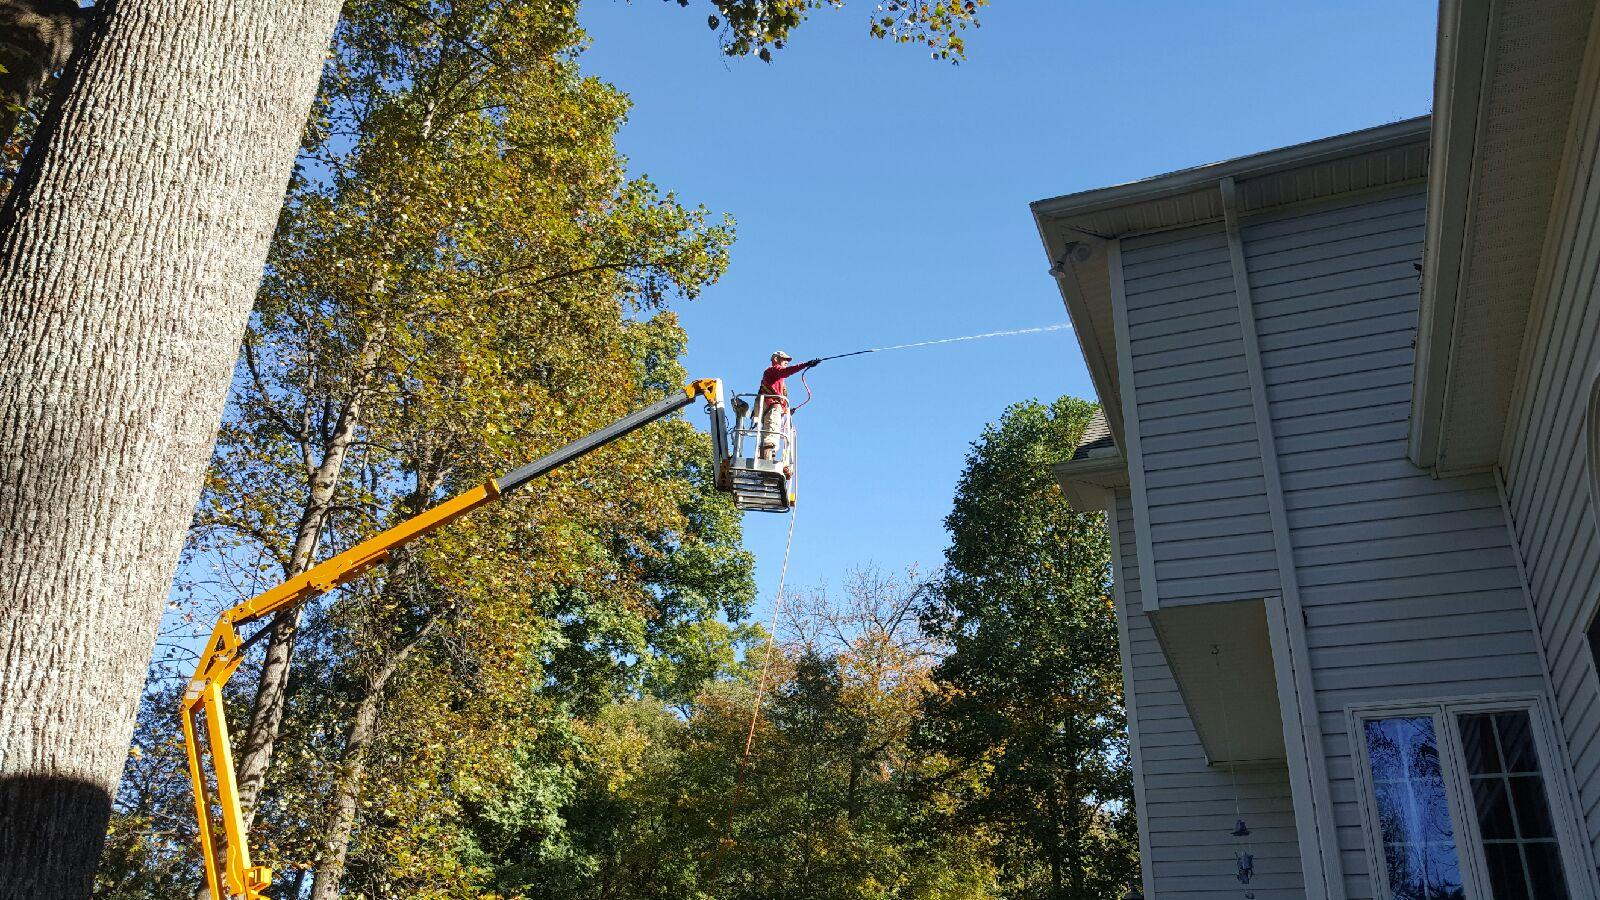 Boom Lift | Pressure Washing Service in Hagerstown MD